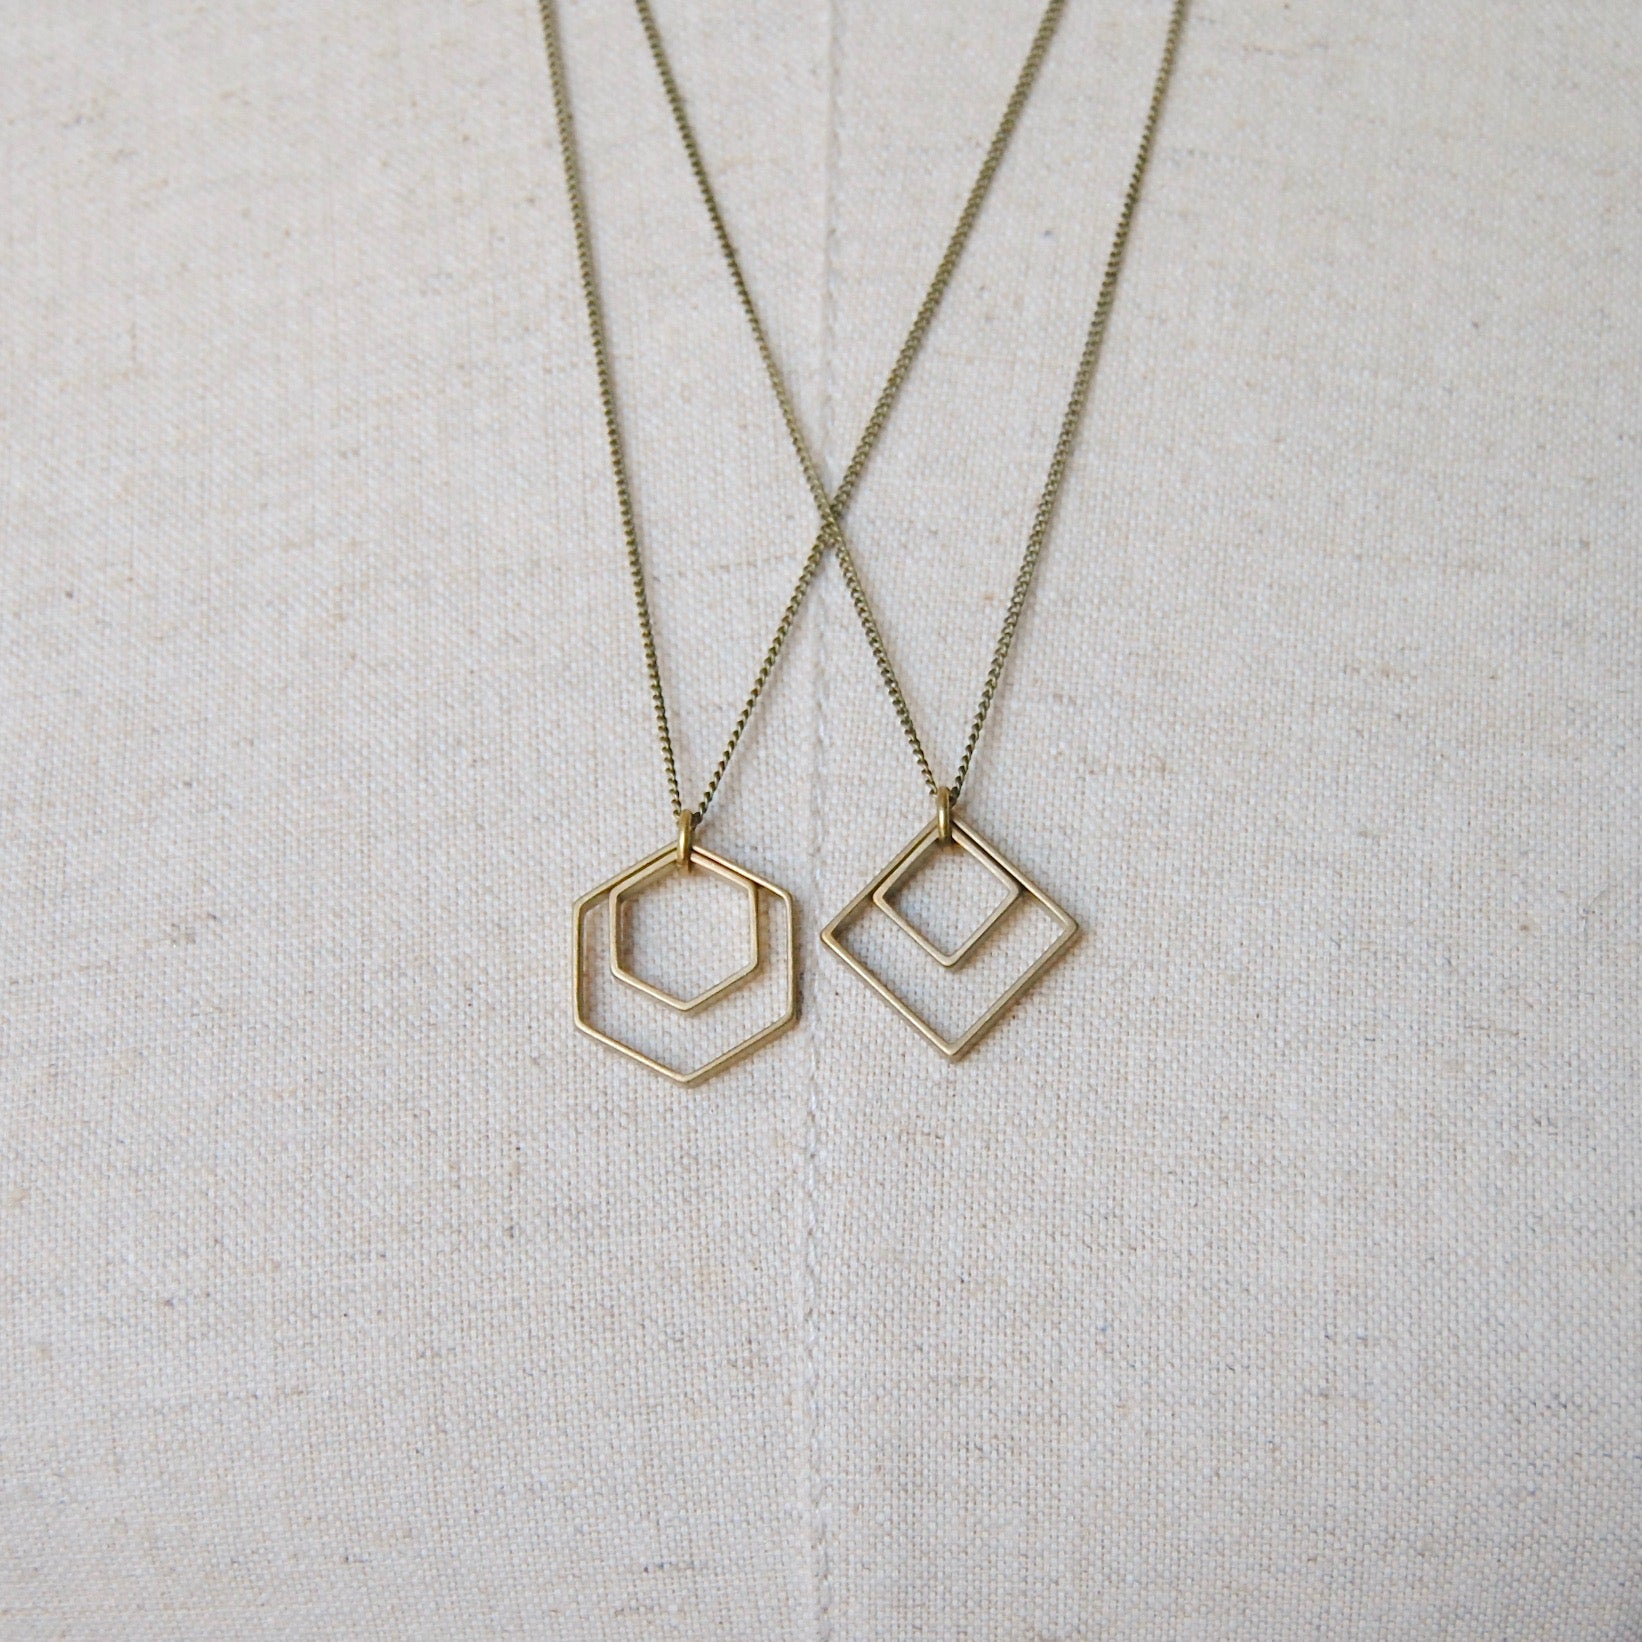 HEXAGONS STYLE ALSO AVAILABLE